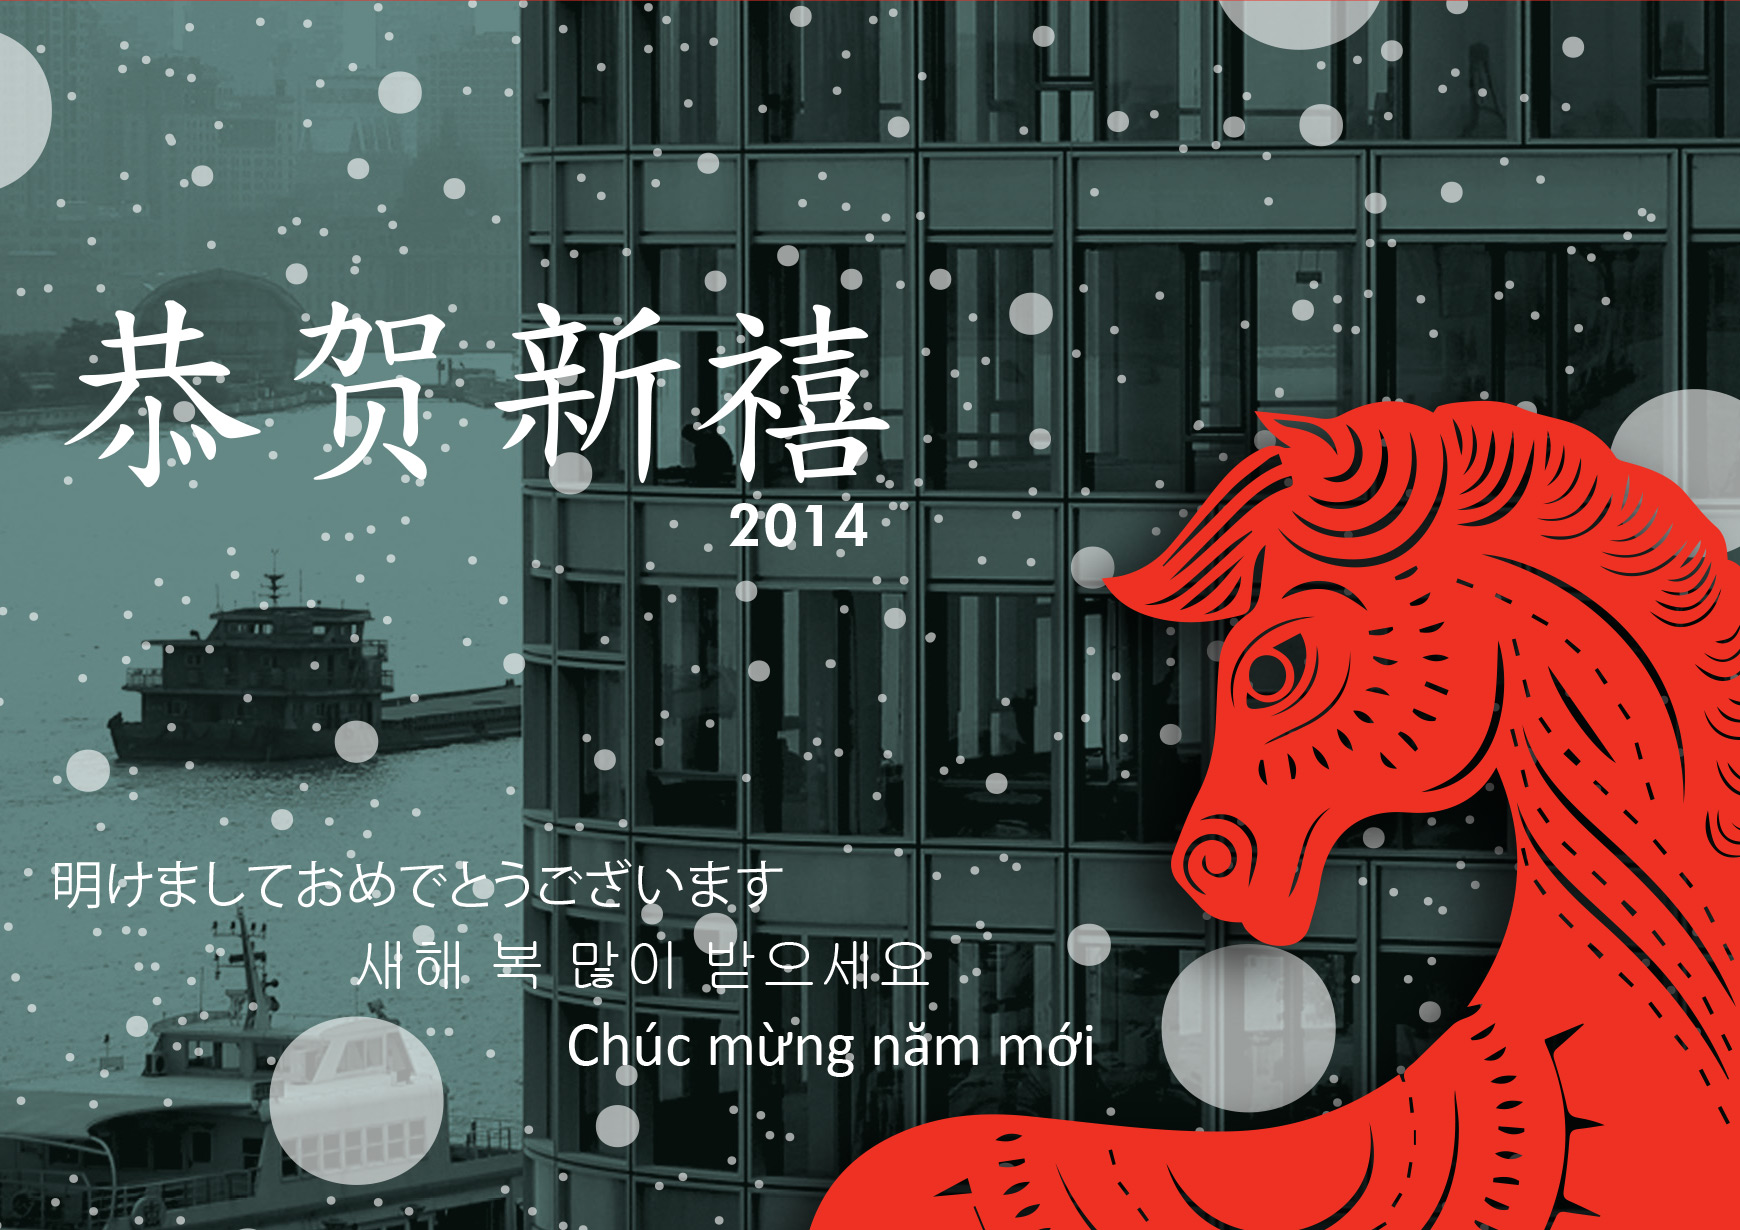 Lunar-New-Year-Card-2014_print-1